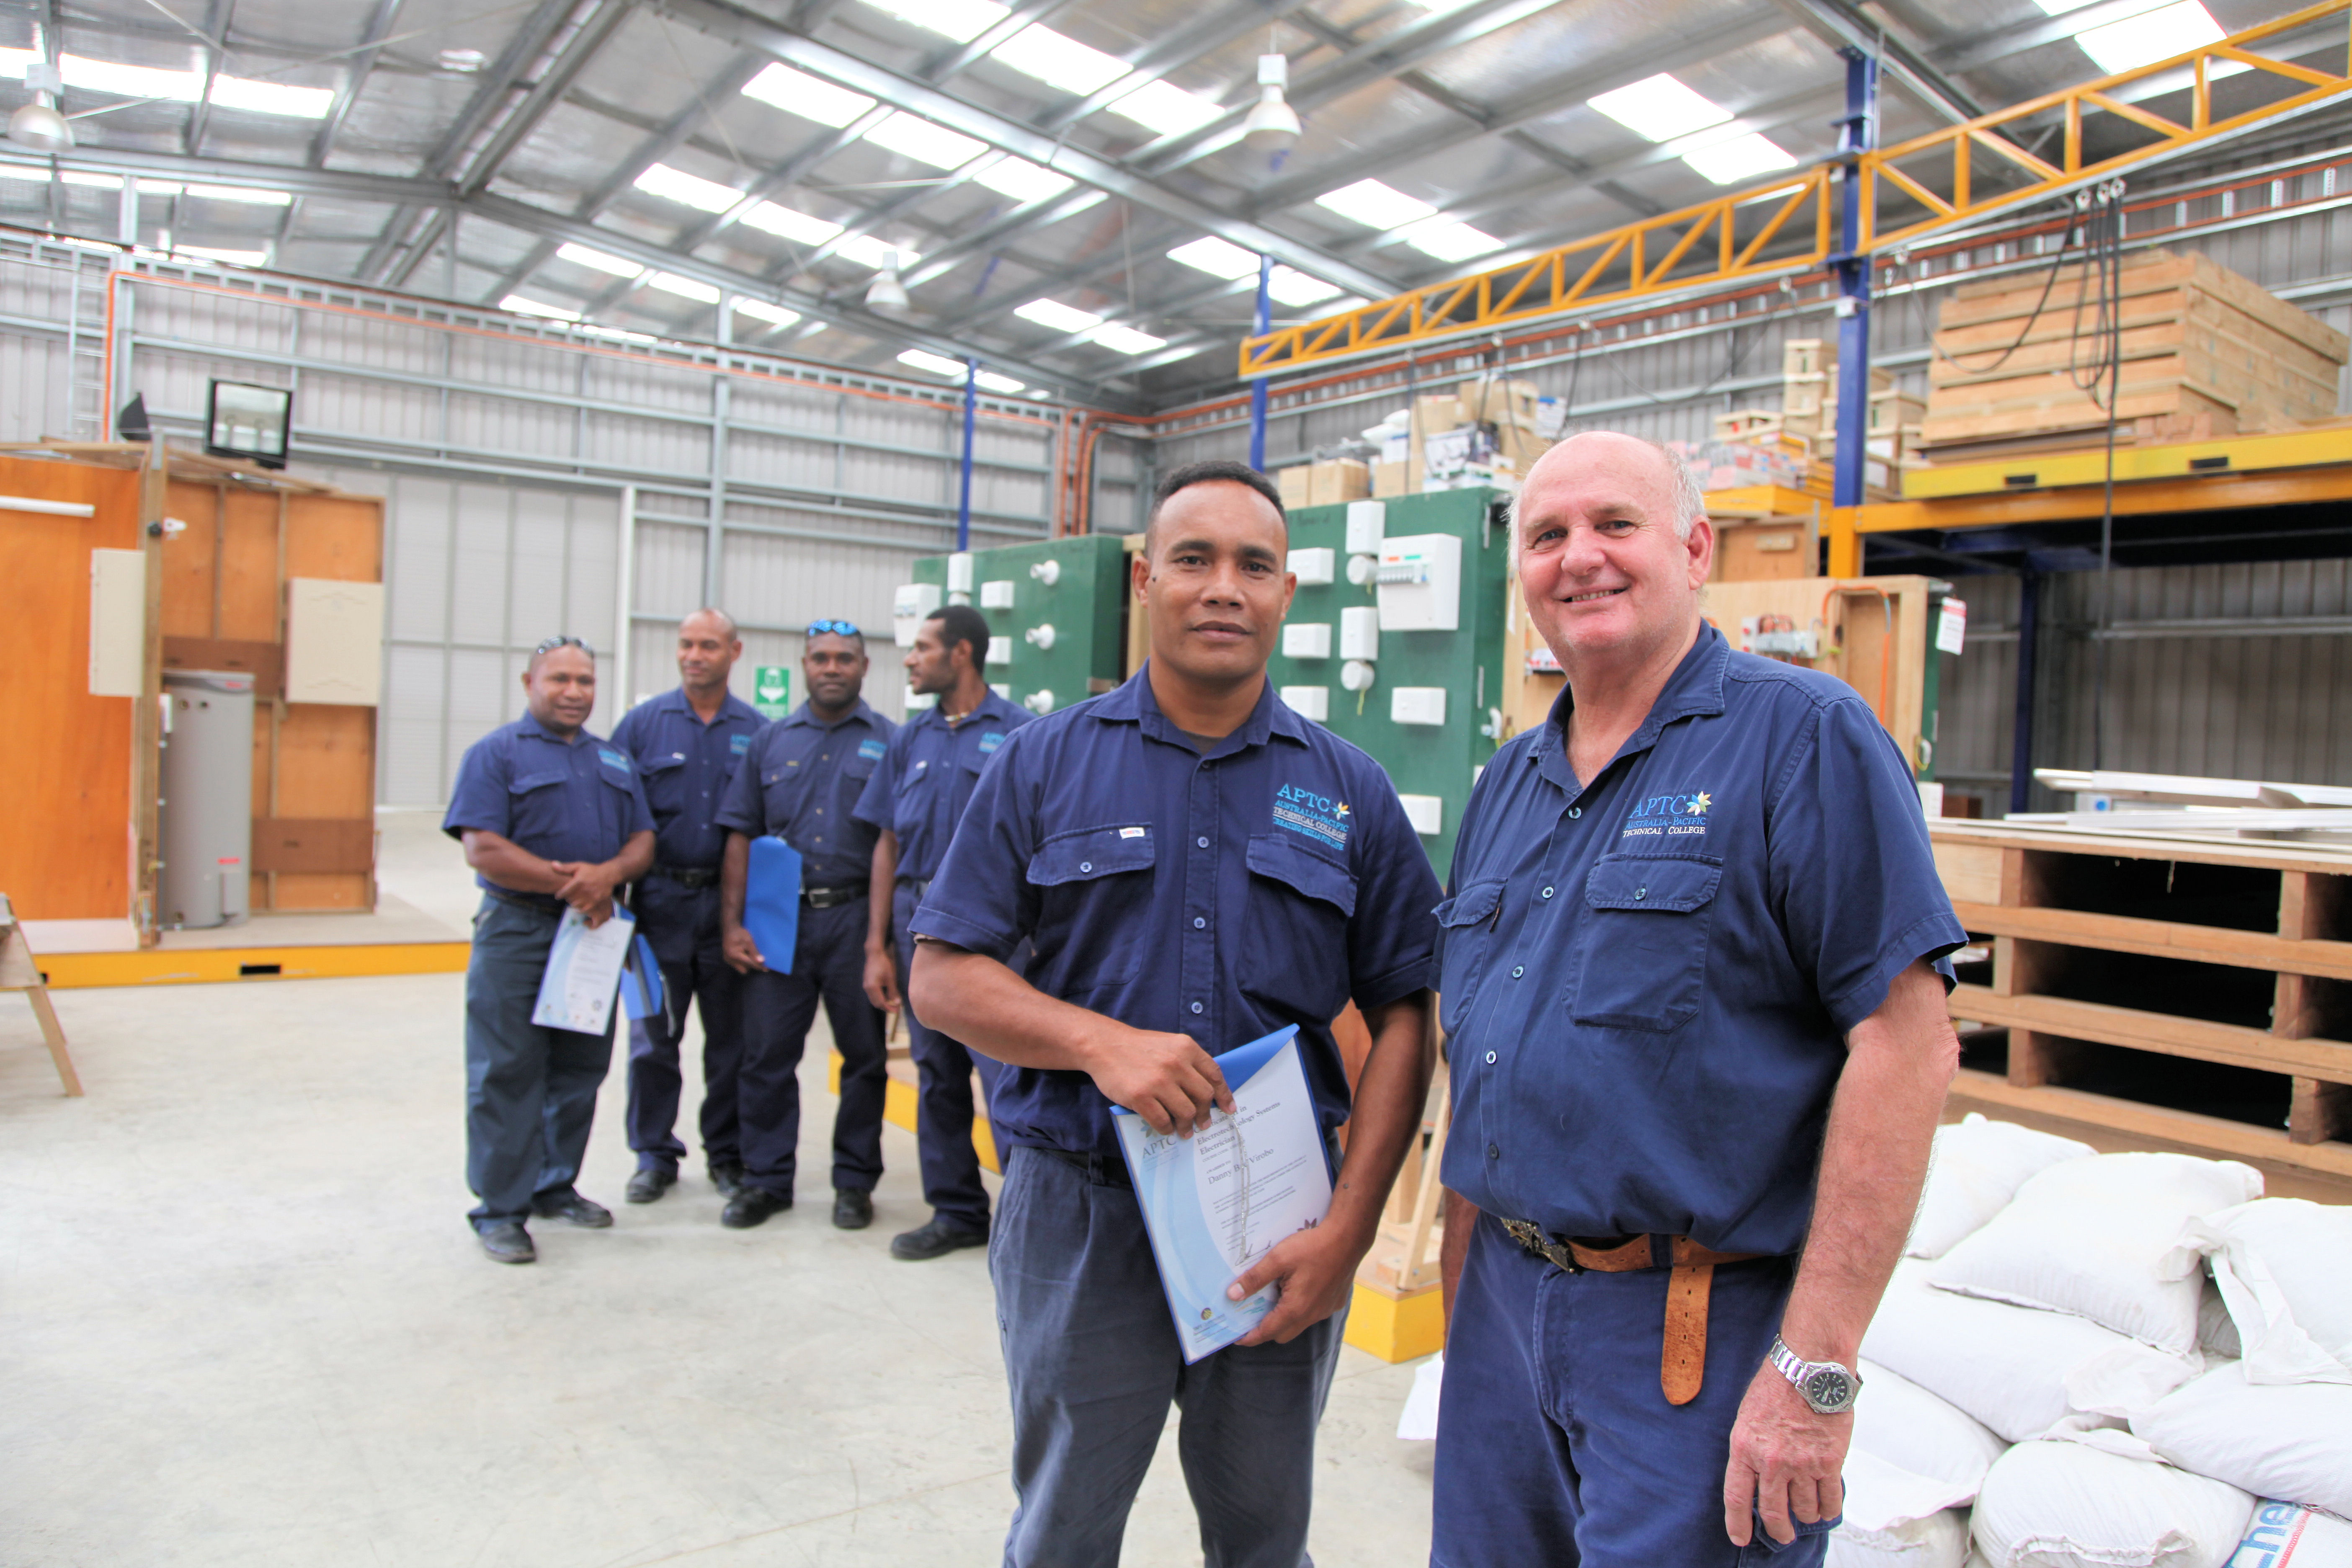 File:Australia provides training for PNG electricians (10673381114